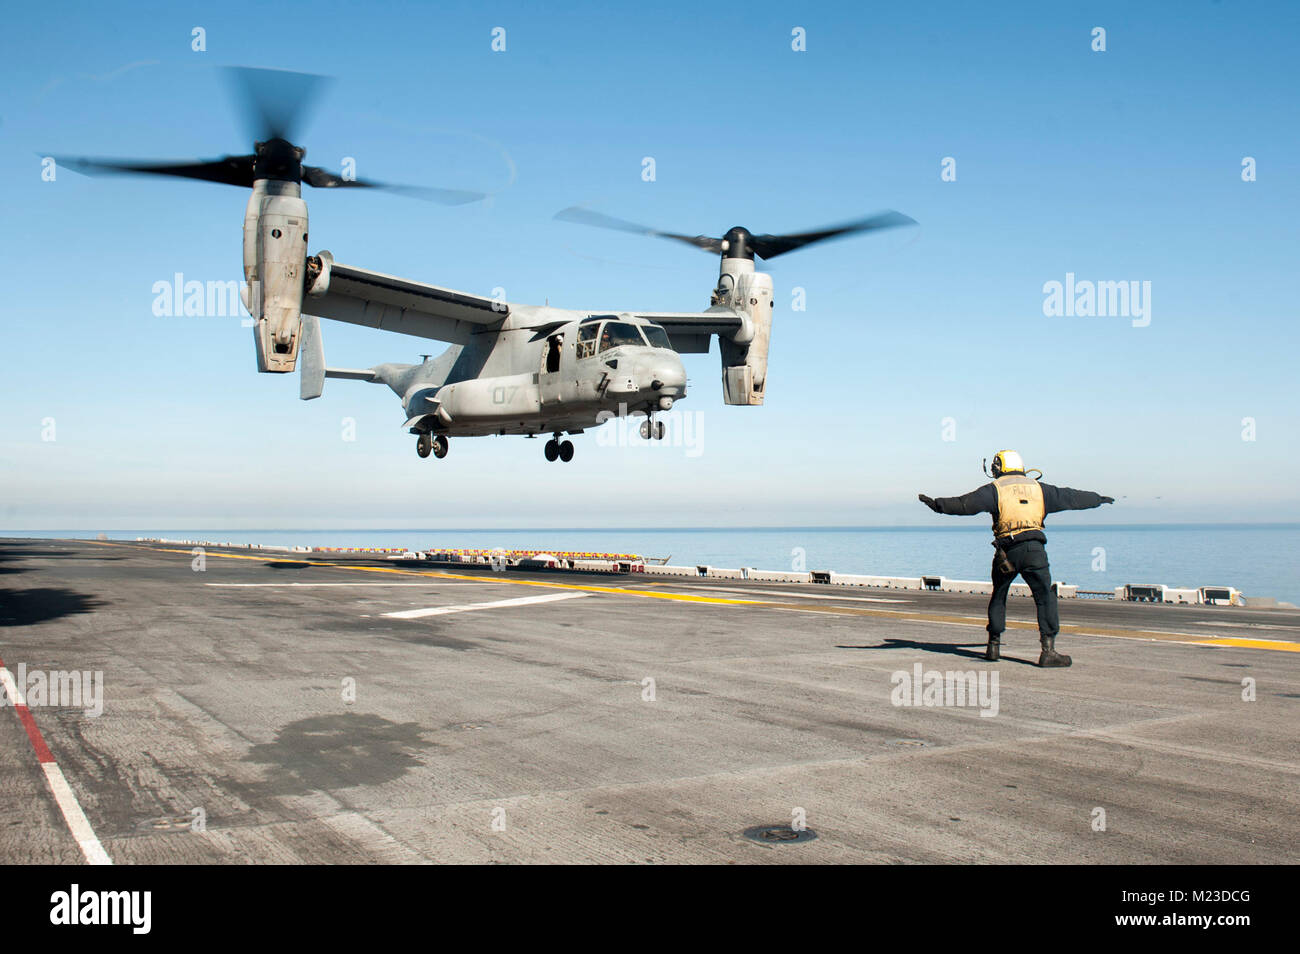 180201-N-ZS023-007  PACIFIC OCEAN (Feb. 1, 2018) An MV-22 Osprey helicopter assigned to Marine Medium Tiltrotor Squadron (VMM) 161 (Reinforced) aboard the amphibious assault ship USS America (LHA 6) lands on the flight deck. America, part of the America Amphibious Ready Group, with embarked 15th Marine Expeditionary Unit (MEU), is returning from a 7-month deployment to the U.S. 3rd, 5th and 7th fleet areas of operations. (U.S. Navy photo by Mass Communication Specialist 3rd Class Vance Hand/Released) Stock Photo